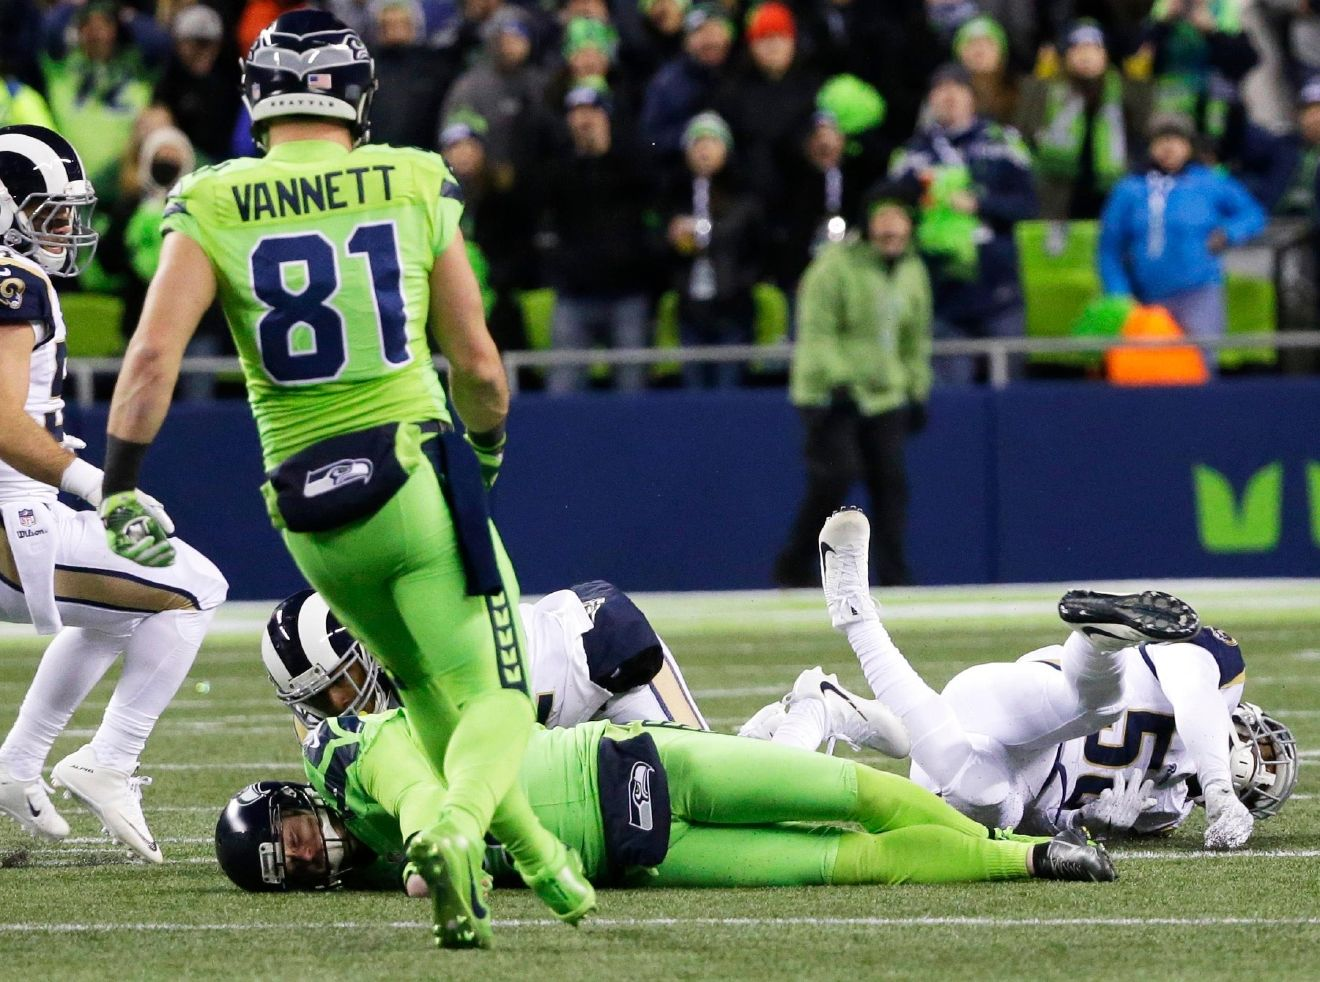 Seattle Seahawks punter Jon Ryan, lower left, lies on the turf after taking a hard hit while running the ball on a fake punt play against the Los Angeles Rams in the second half of an NFL football game, Thursday, Dec. 15, 2016, in Seattle. Ryan left the game with an injury on the play. (AP Photo/Elaine Thompson)